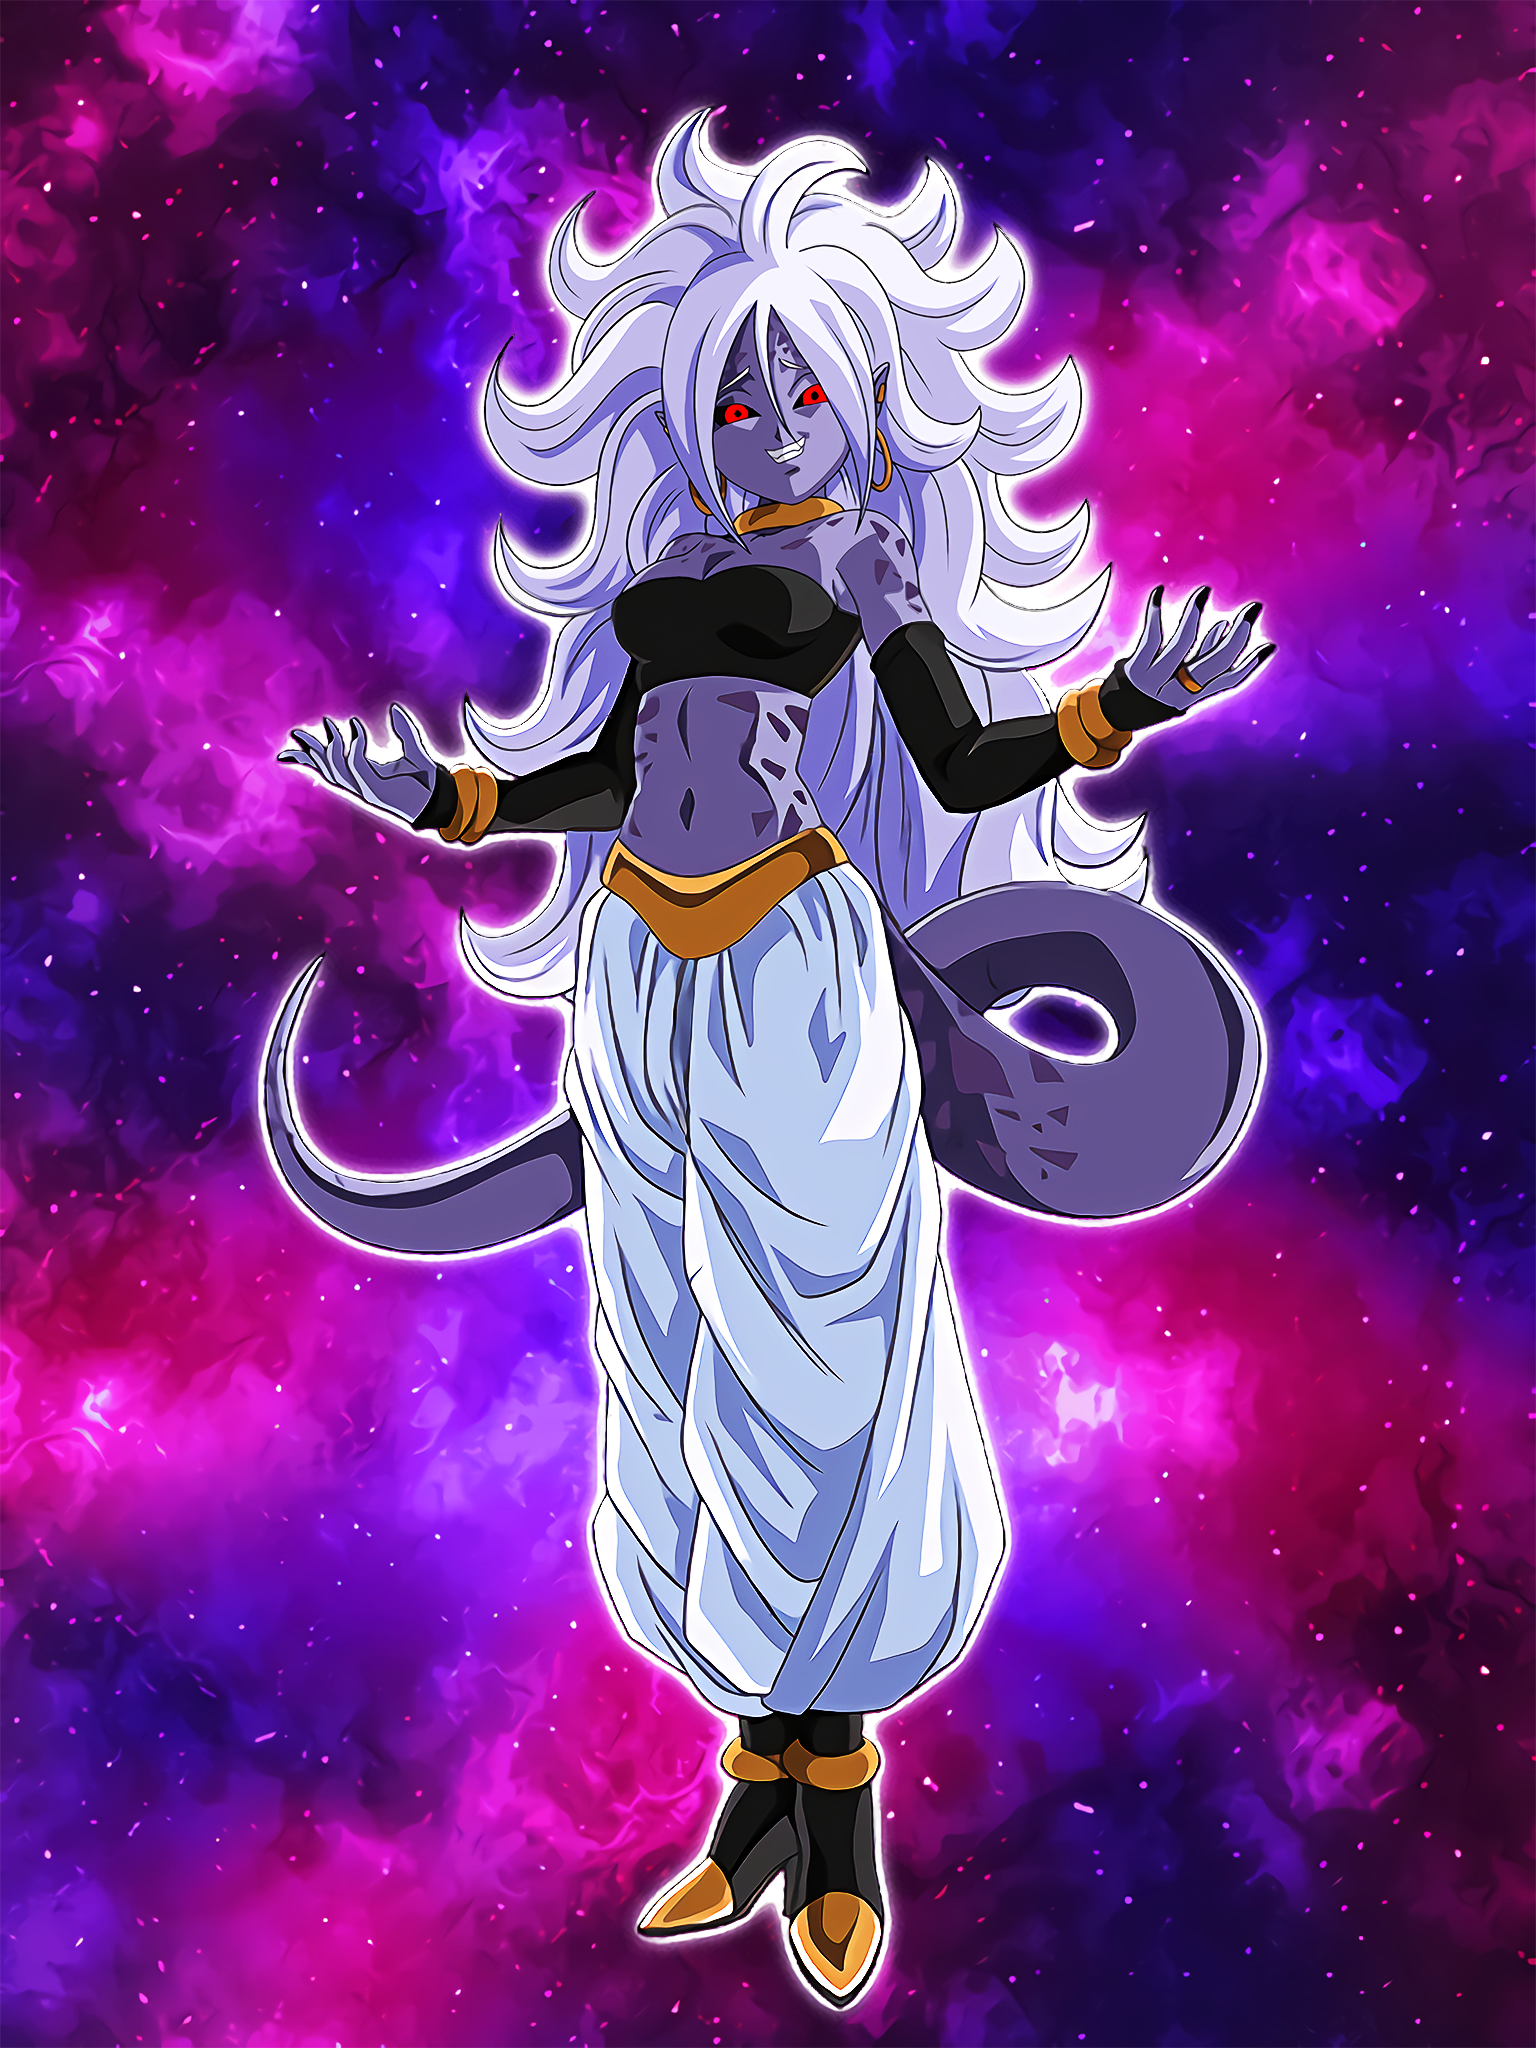 Savage Predatory Impulses Android 21 Cell Absorbed .png